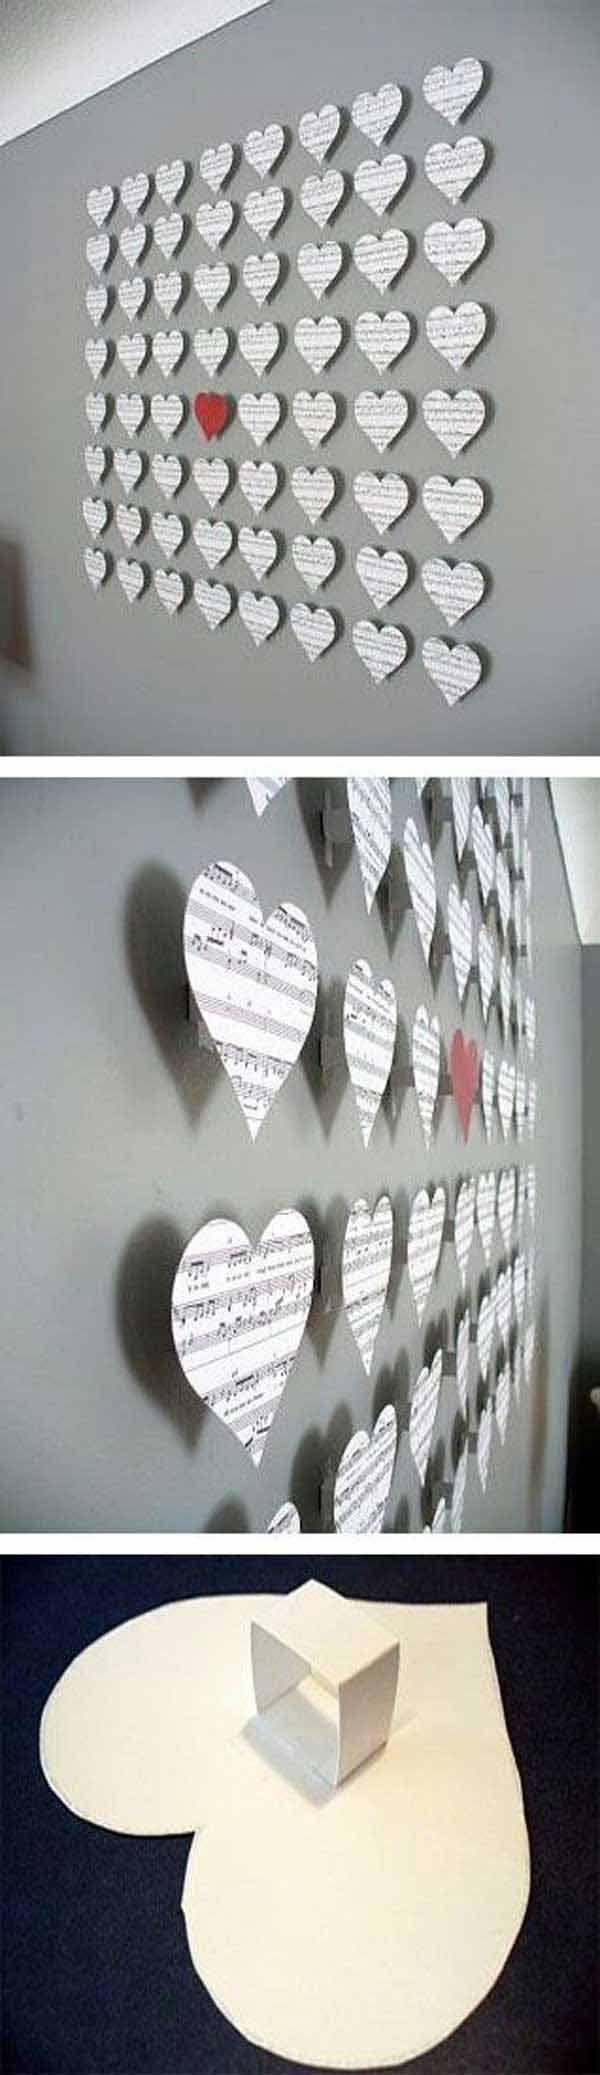 Bedroom wall decor ideas diy - The 25 Best Diy Wall Decor Trending Ideas On Pinterest Diy Painting Diy Room Ideas And Diy Wall Hanging